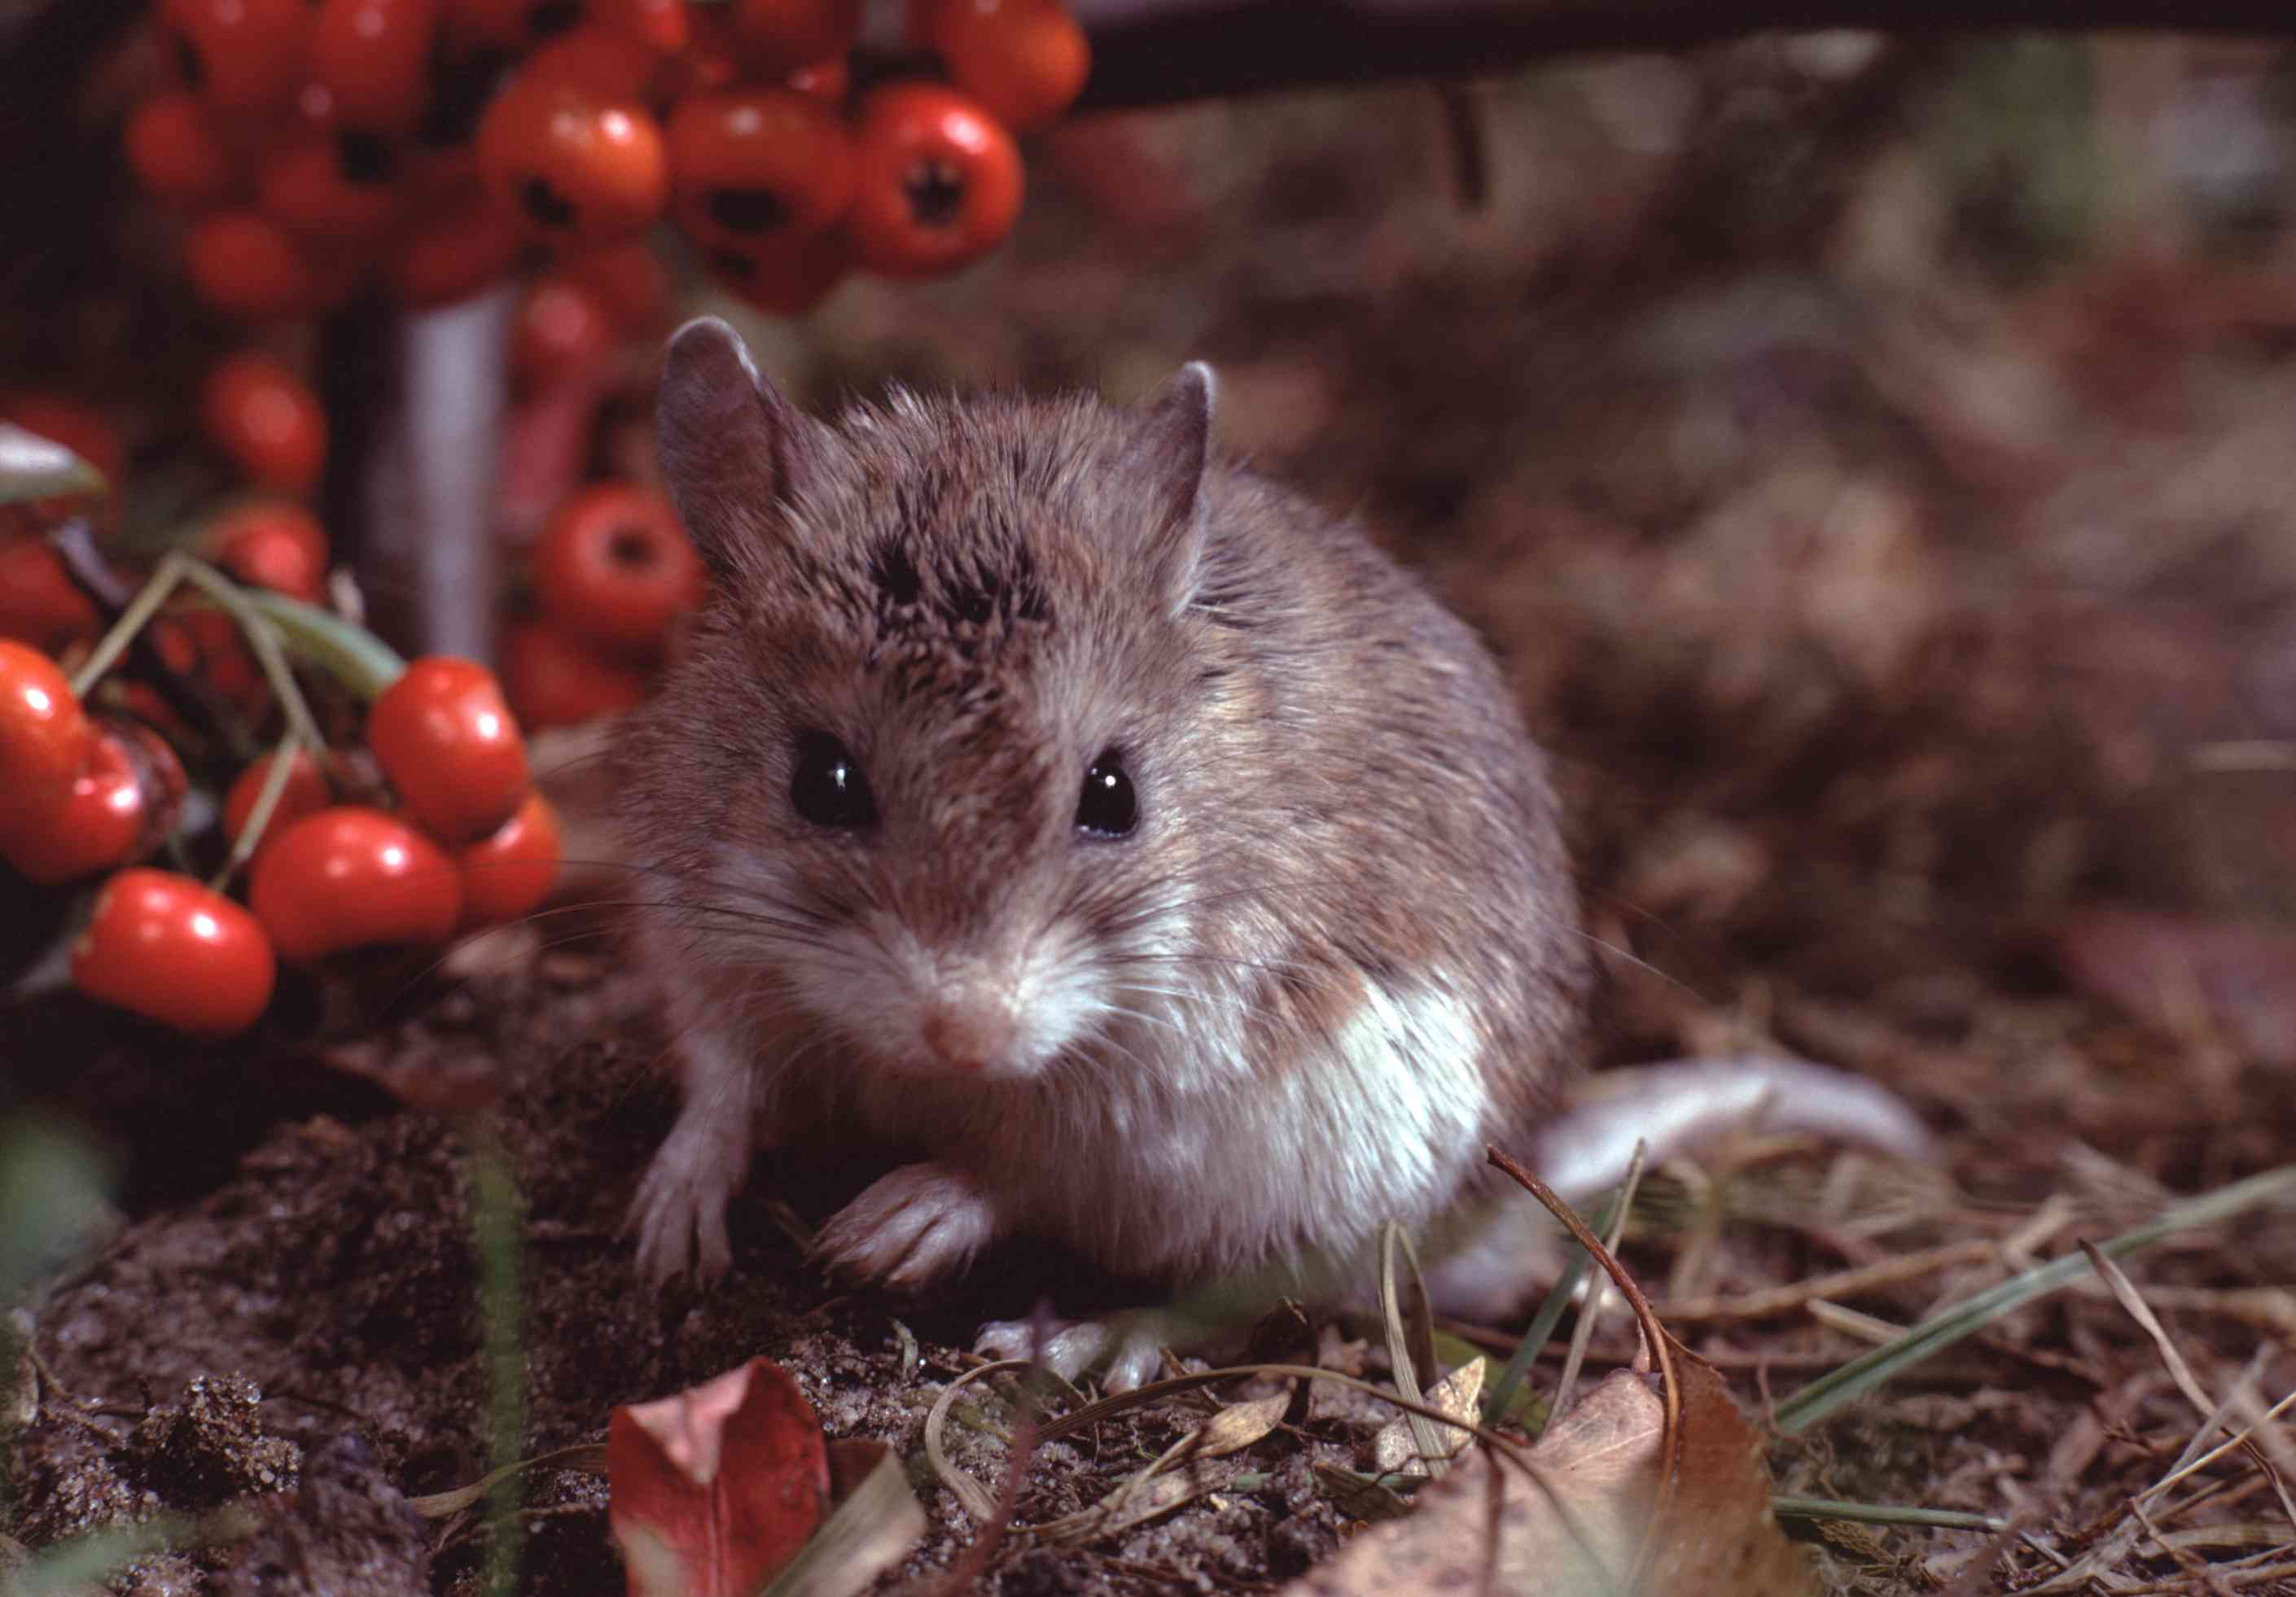 grasshopper mouse on ground surrounded by red berries